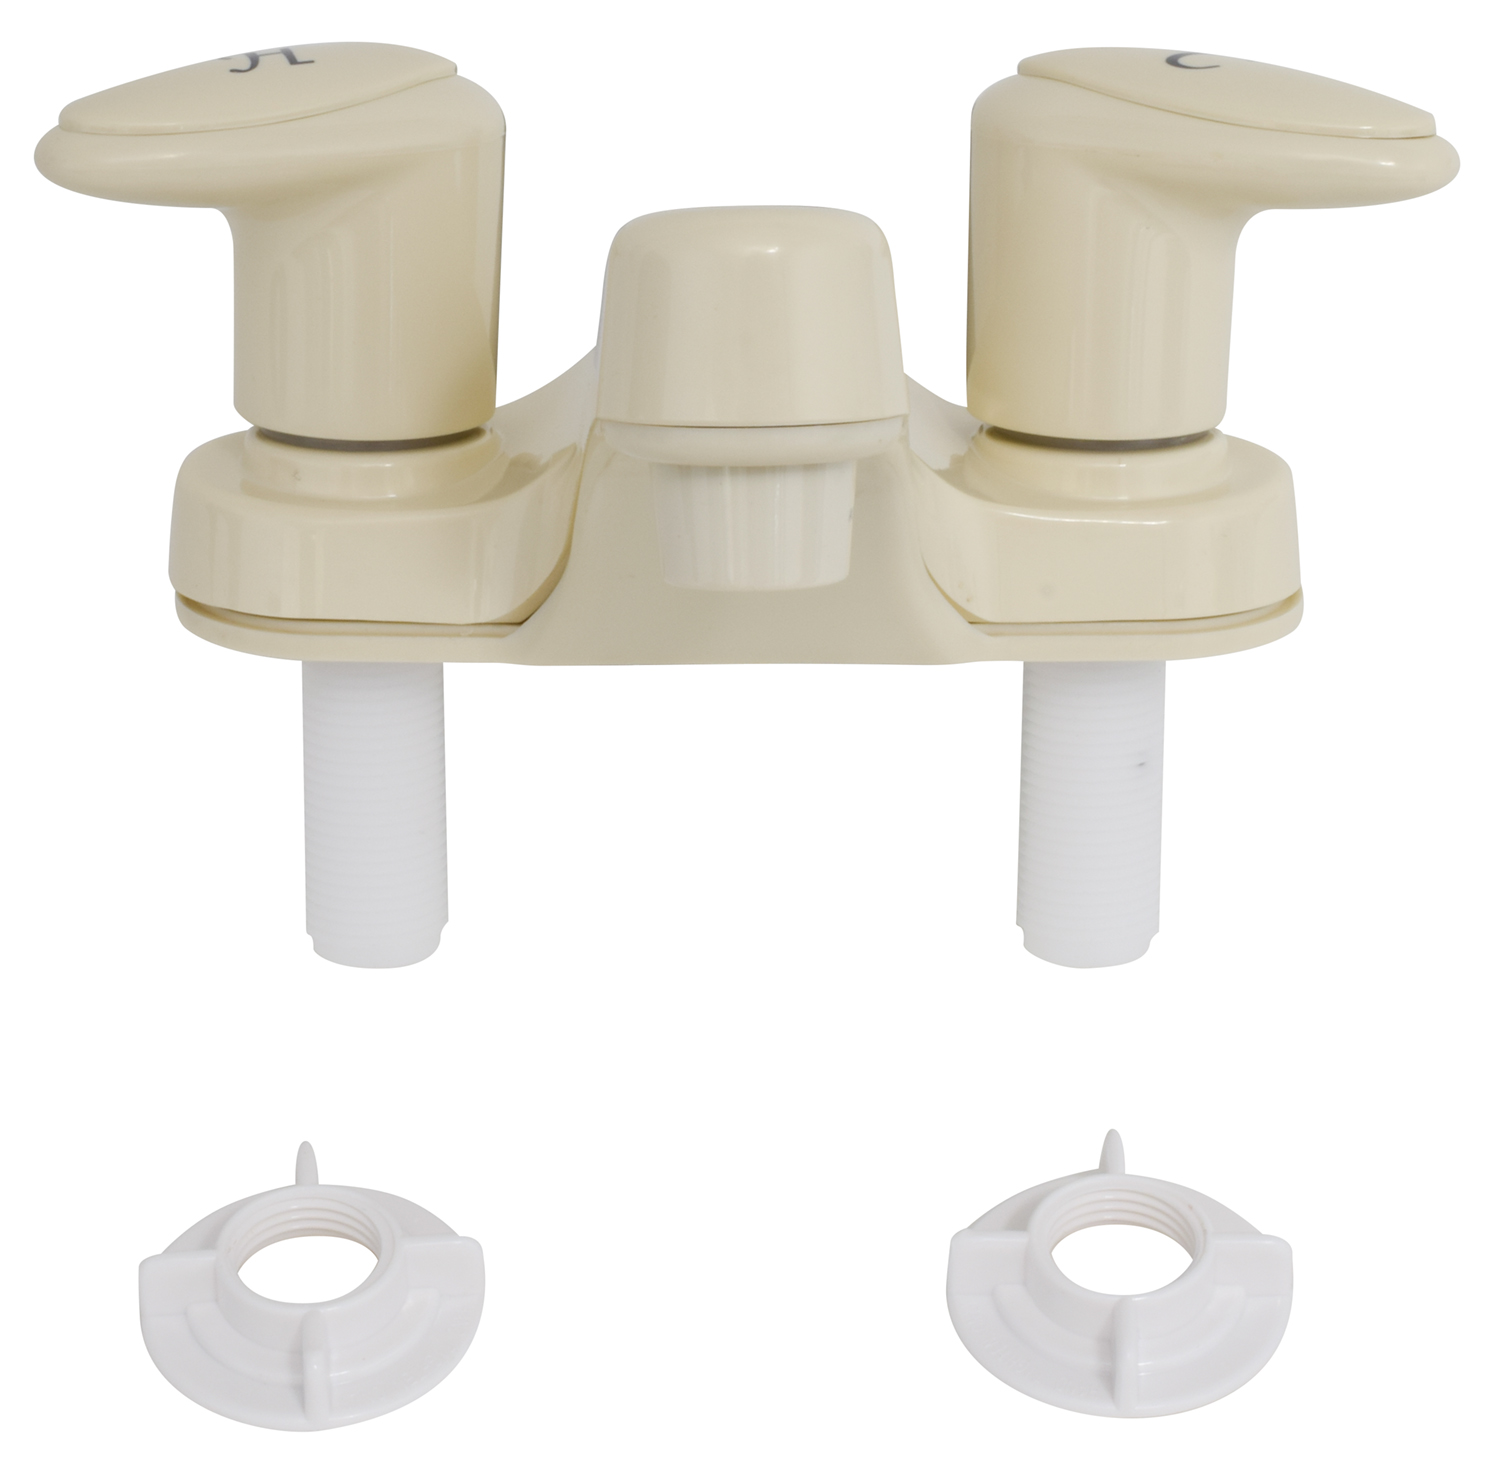 PF222101 Phoenix Products Faucet Used For Lavatory